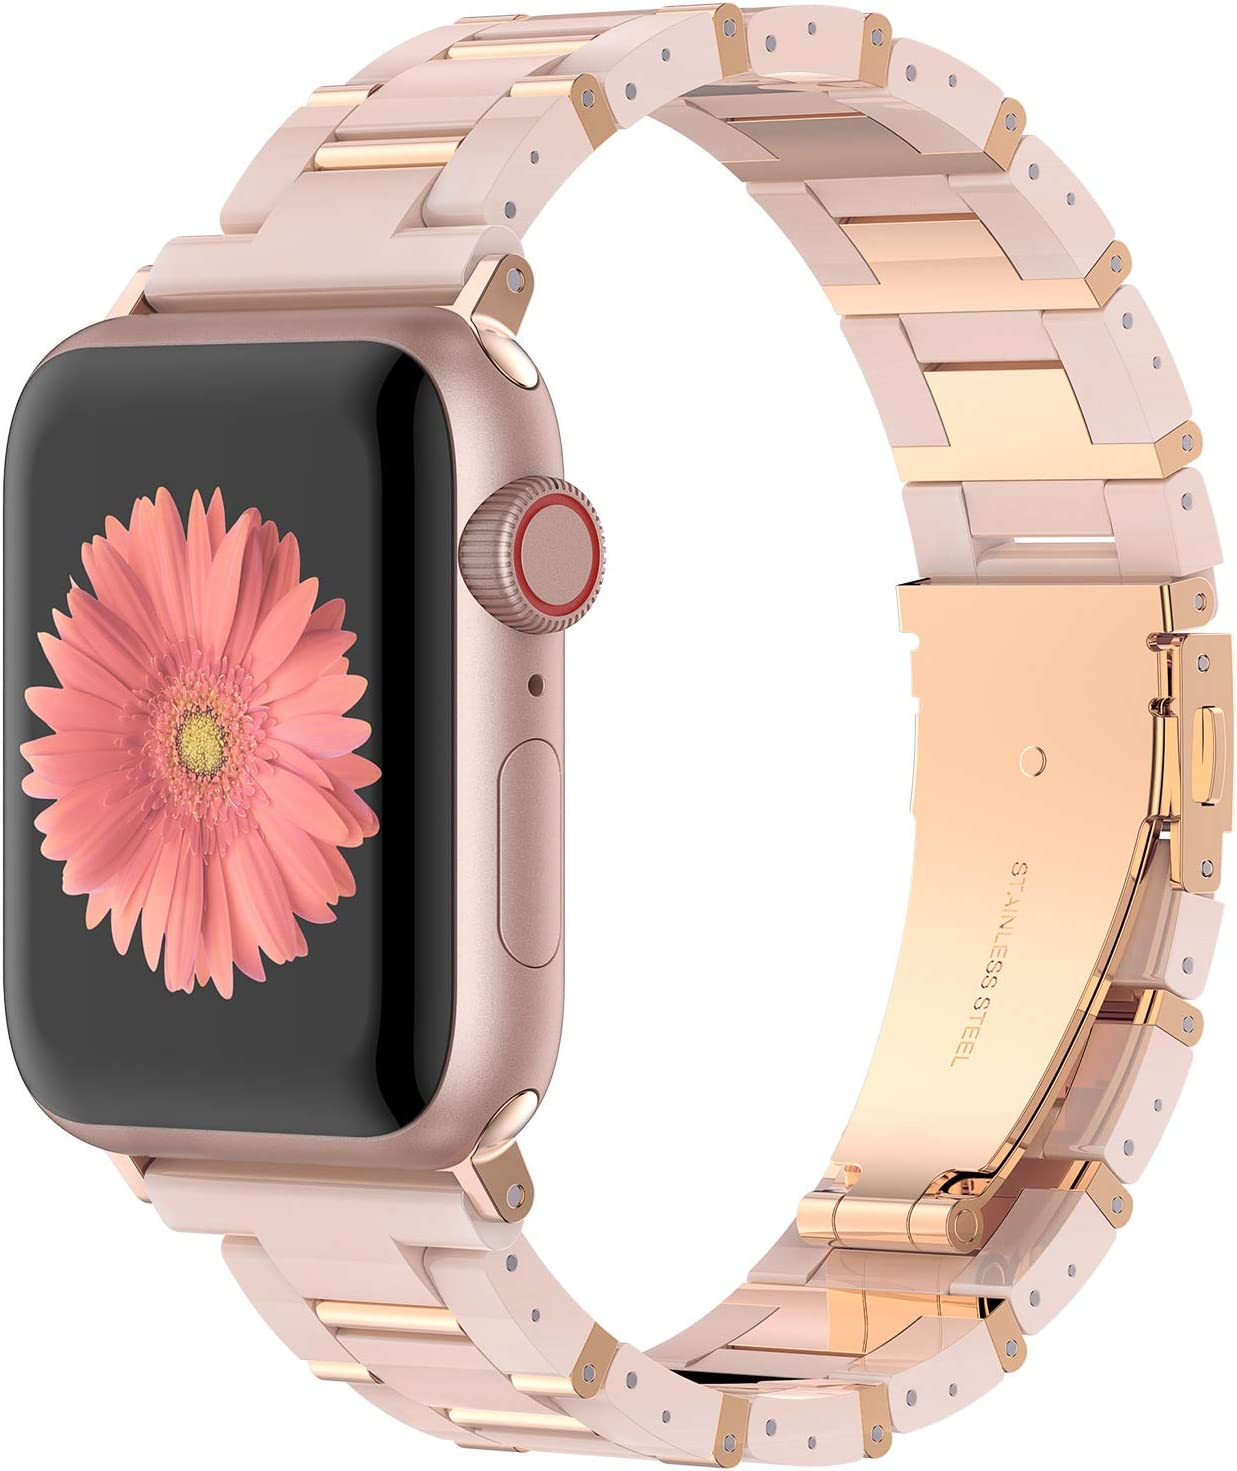 Wearlizer Stainless Steel & Resin Compatible with Apple Watch Band 40mm 38mm for iWatch SE Light Womens Mens Metal Bar Block Unique Wristband for Series 6 5 4 3 2 1-Deep Rose Gold+Pink